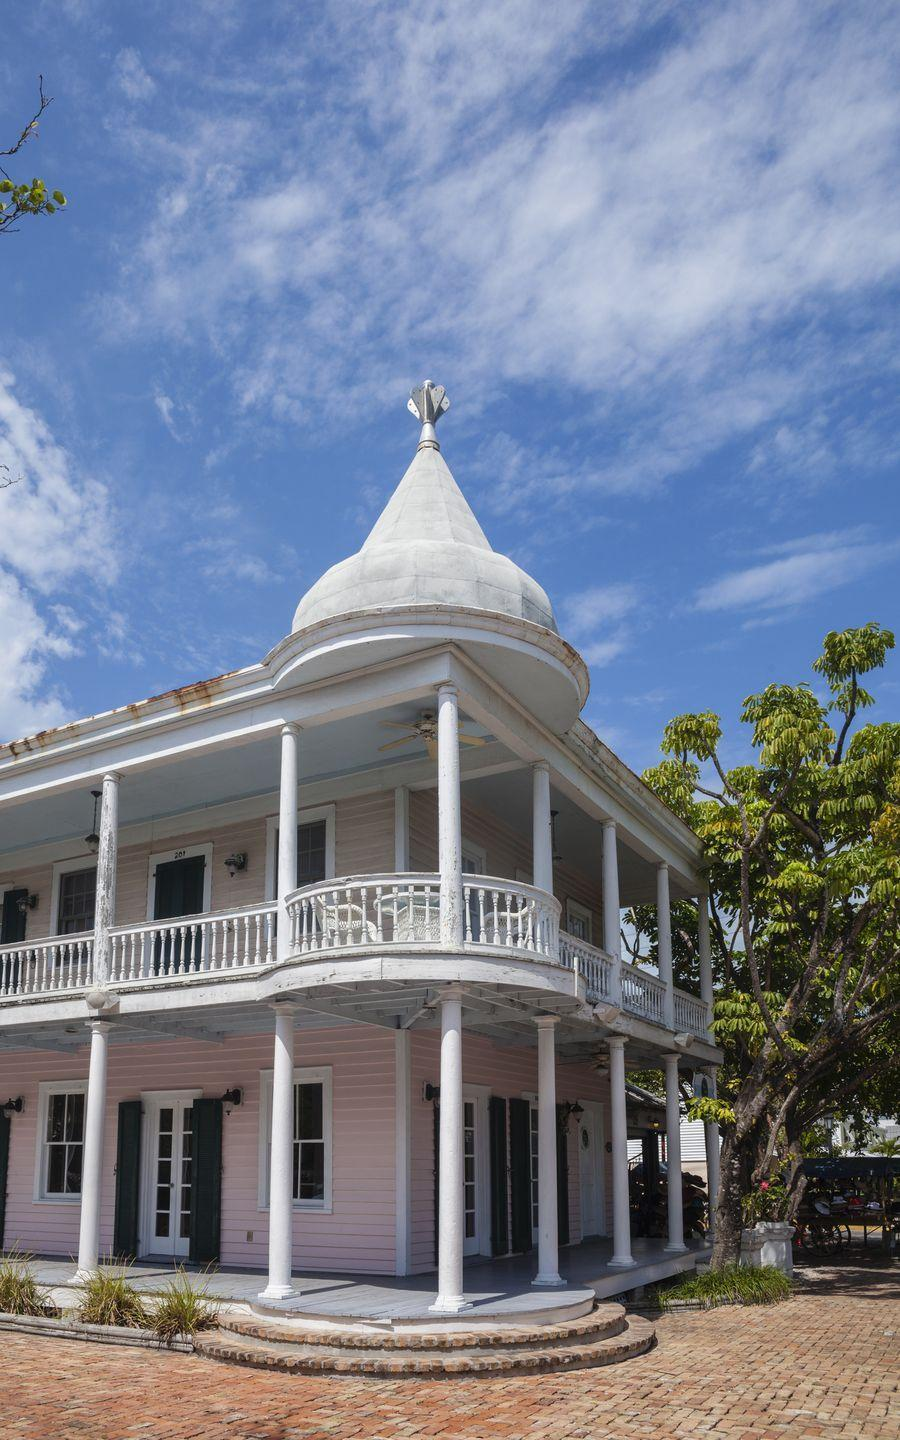 """<p>Uncover the eerie legends of Key West as you check out haunted sites such as La Concha Hotel, the Oldest House, and Saint Paul's Church over the course of 90 minutes. </p><p><a class=""""link rapid-noclick-resp"""" href=""""https://go.redirectingat.com?id=74968X1596630&url=https%3A%2F%2Fwww.tripadvisor.com%2FAttractionProductReview-g34345-d15563756-Key_West_Ghost_and_Mysteries_Guided_Tour-Key_West_Florida_Keys_Florida.html&sref=https%3A%2F%2Fwww.redbookmag.com%2Flife%2Fg37623207%2Fghost-tours-near-me%2F"""" rel=""""nofollow noopener"""" target=""""_blank"""" data-ylk=""""slk:LEARN MORE"""">LEARN MORE</a></p>"""